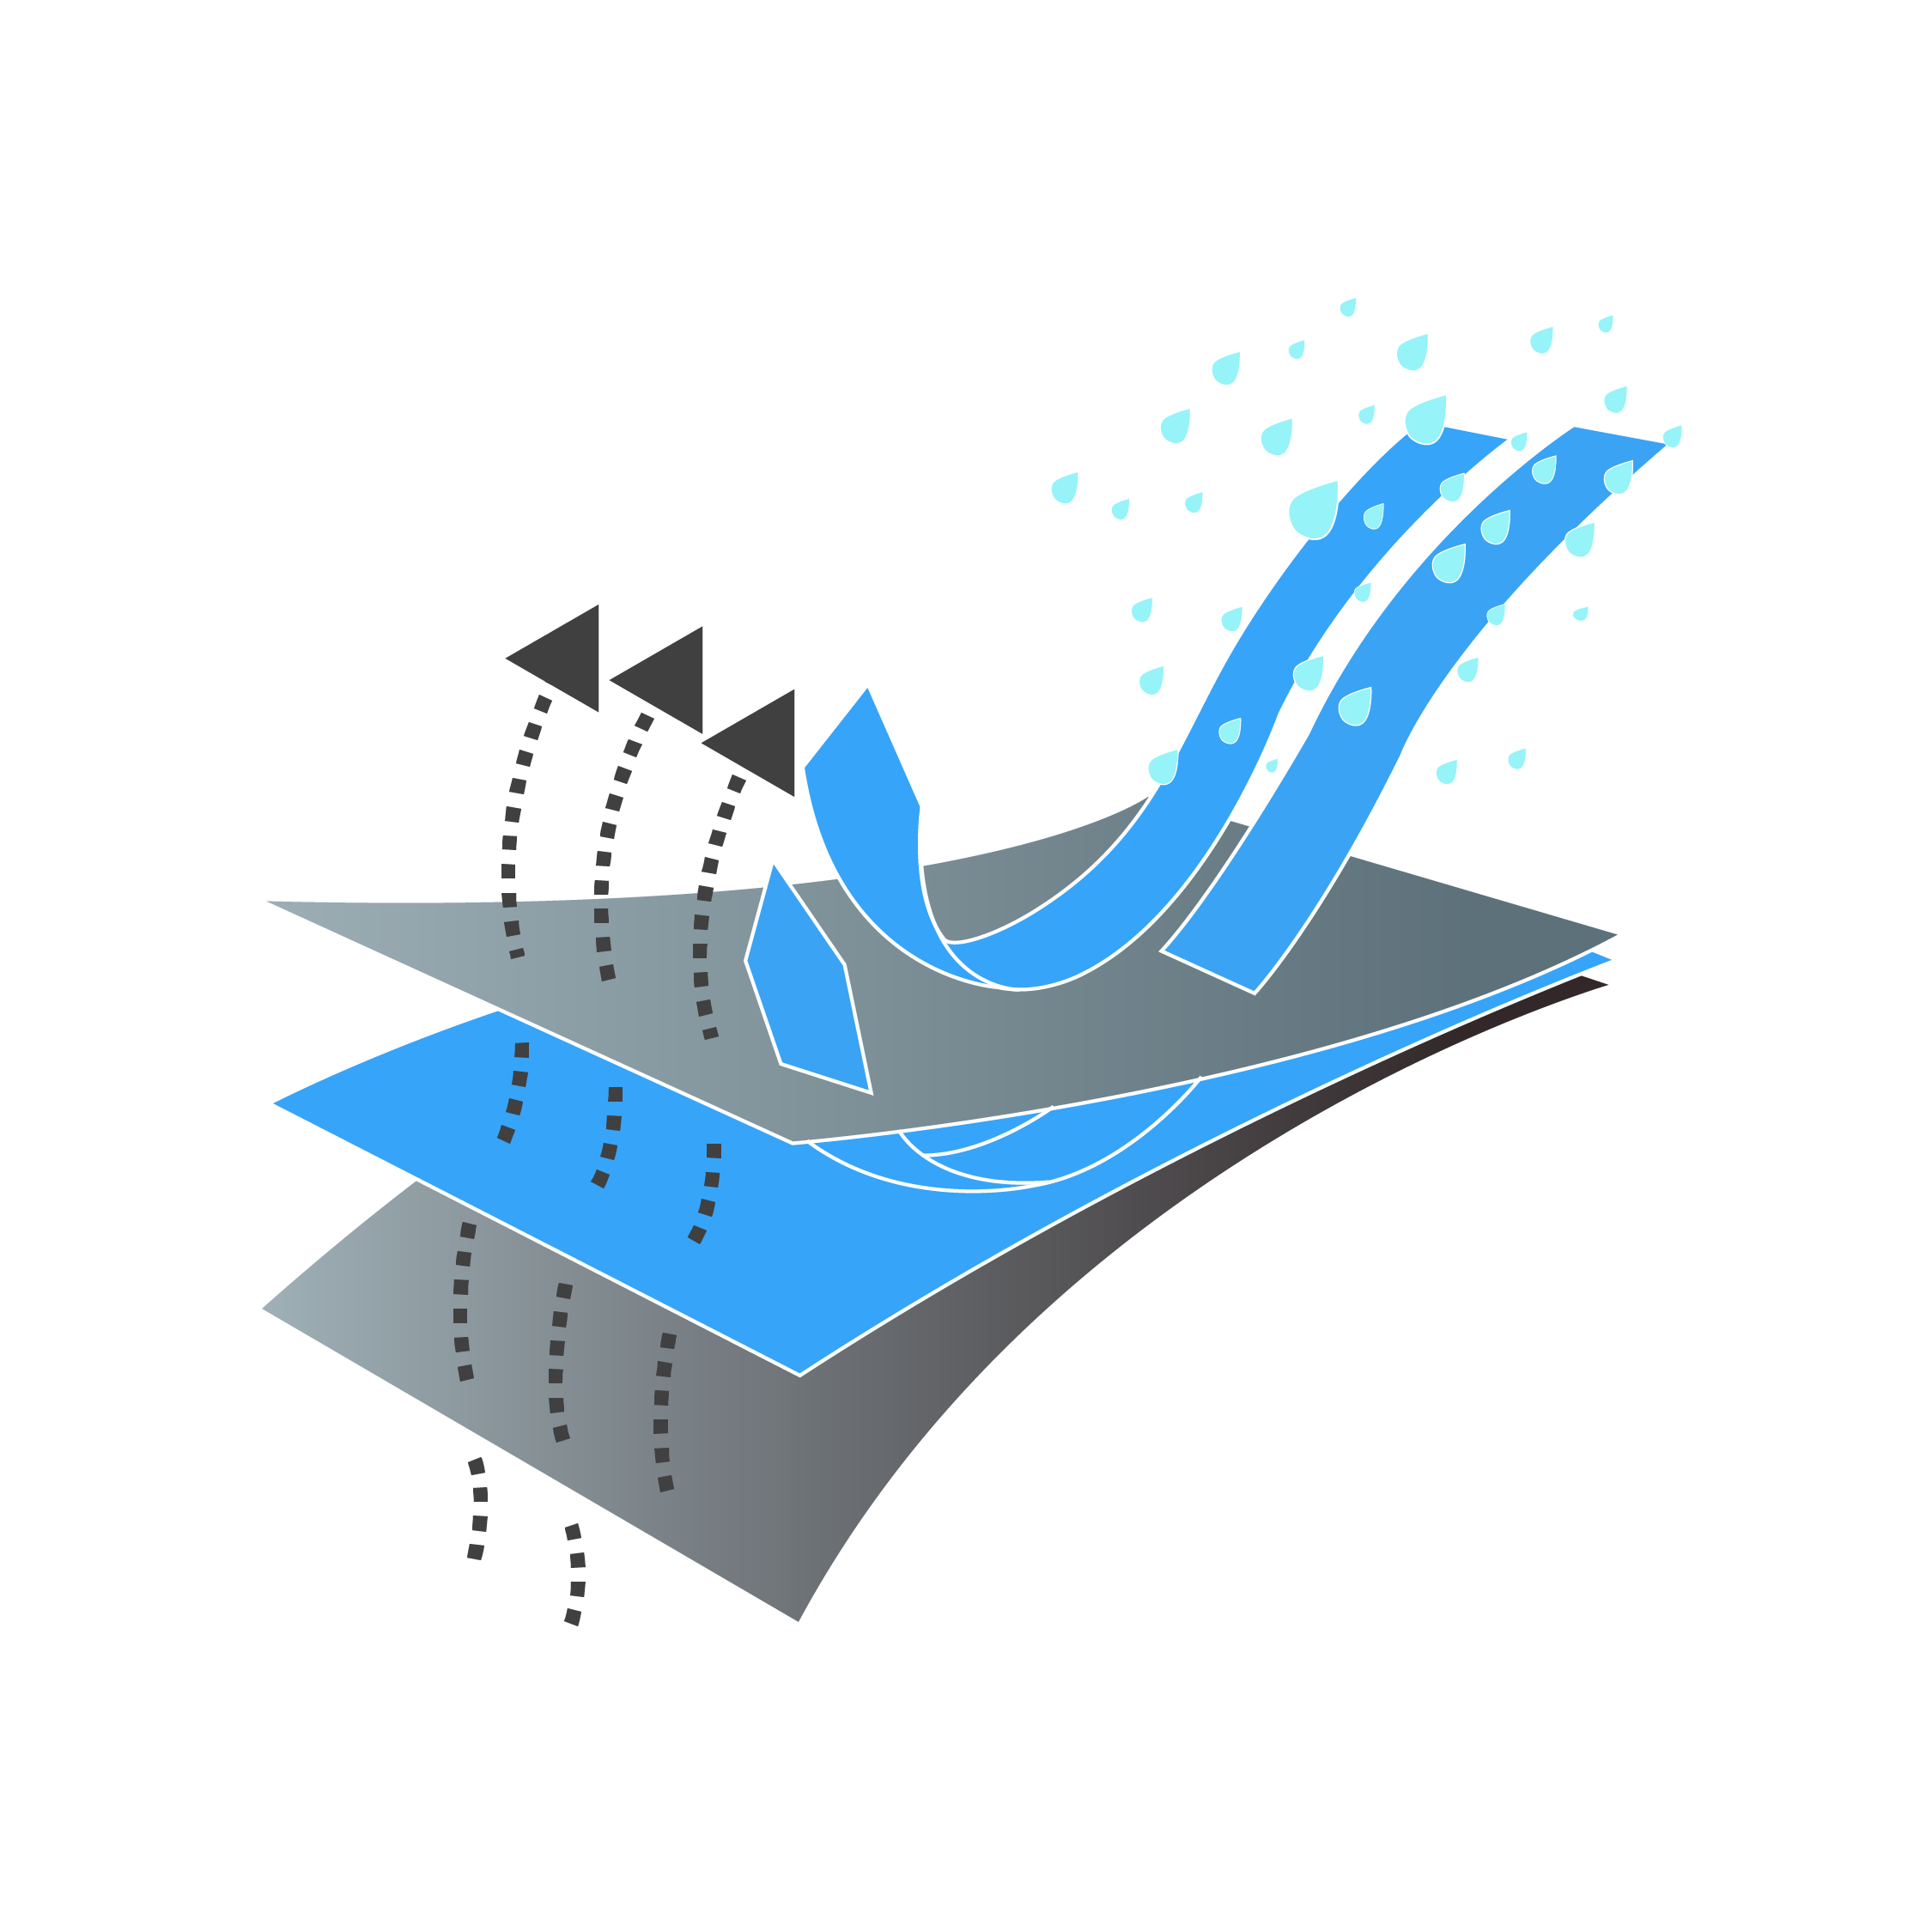 waterproof technology illustration